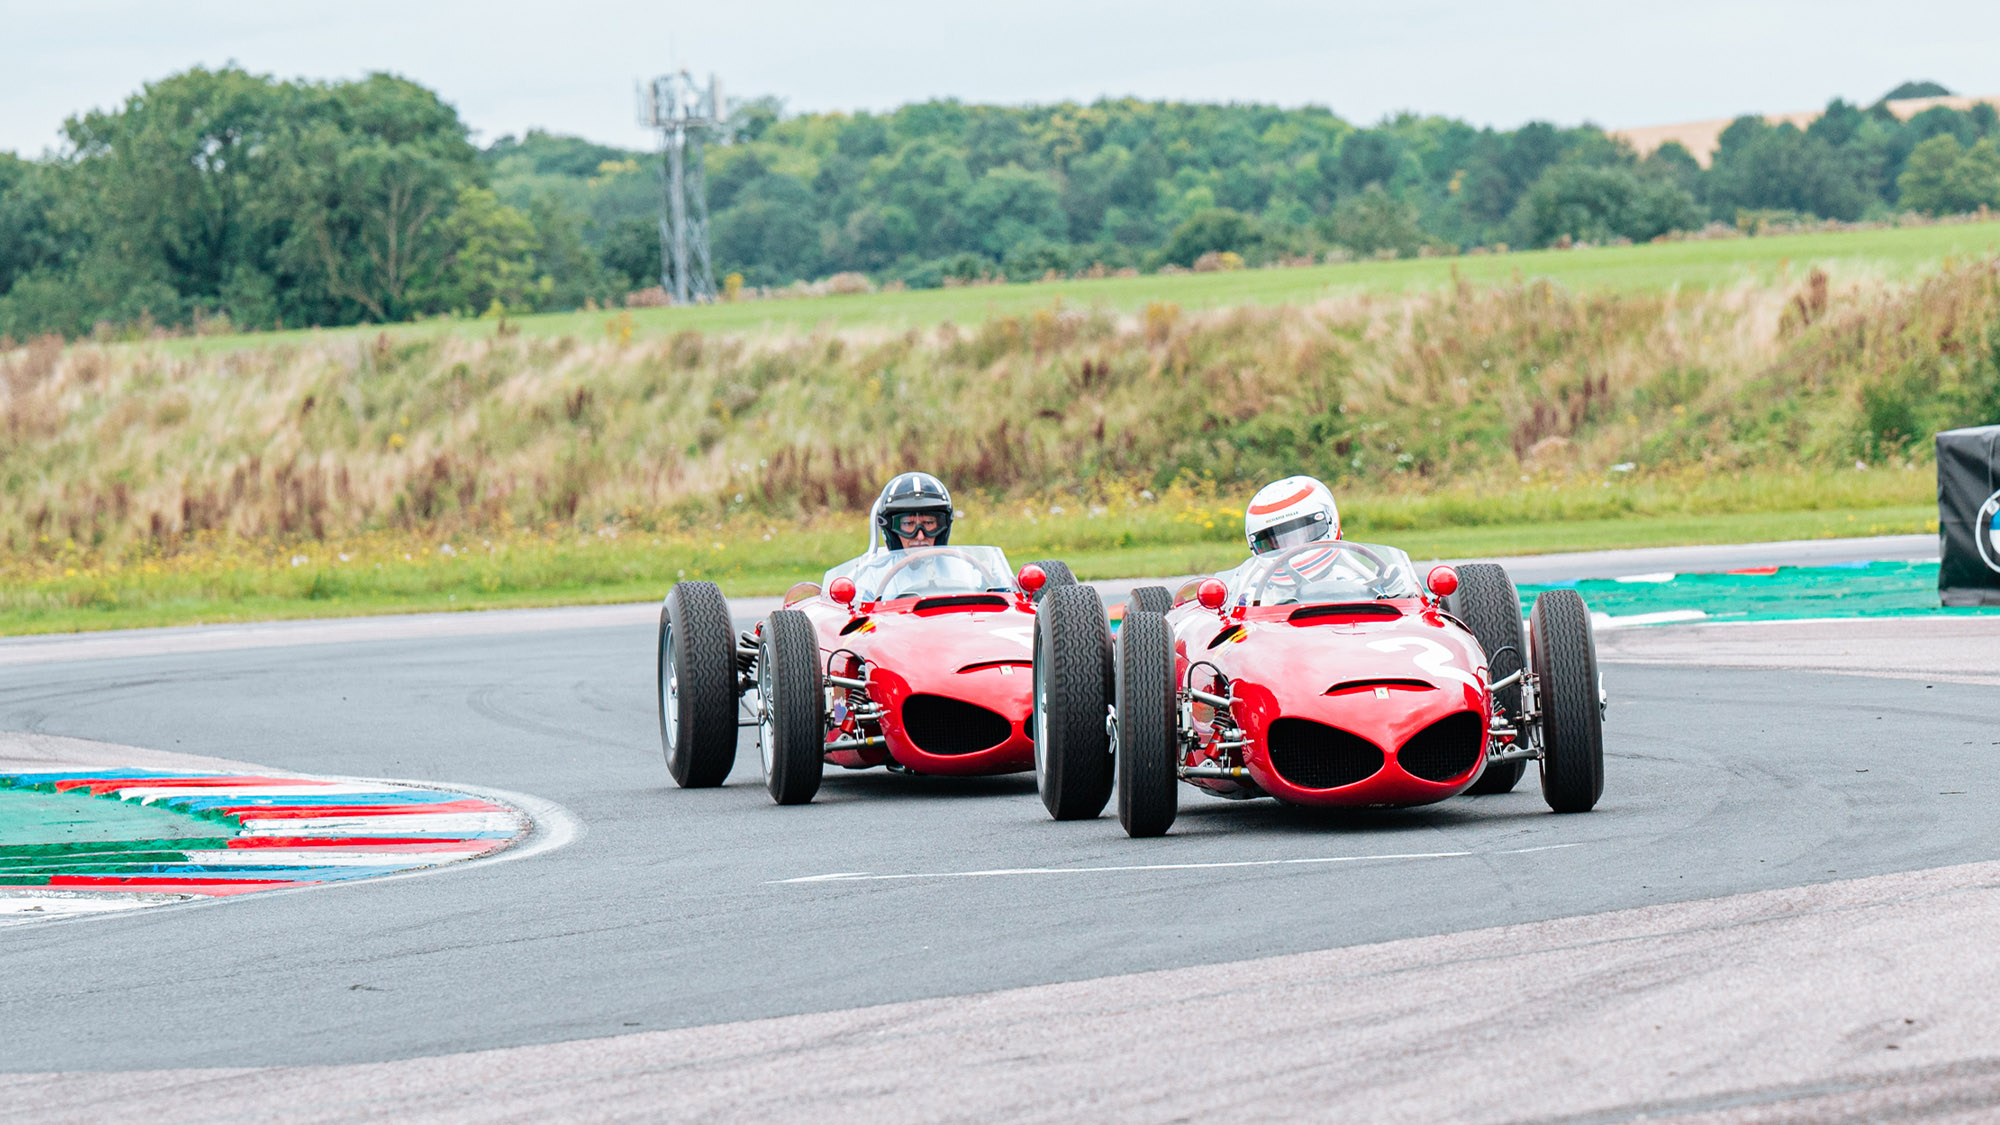 Martin Brundle and Damon Hill at Thruxton in Ferrari Sharknose